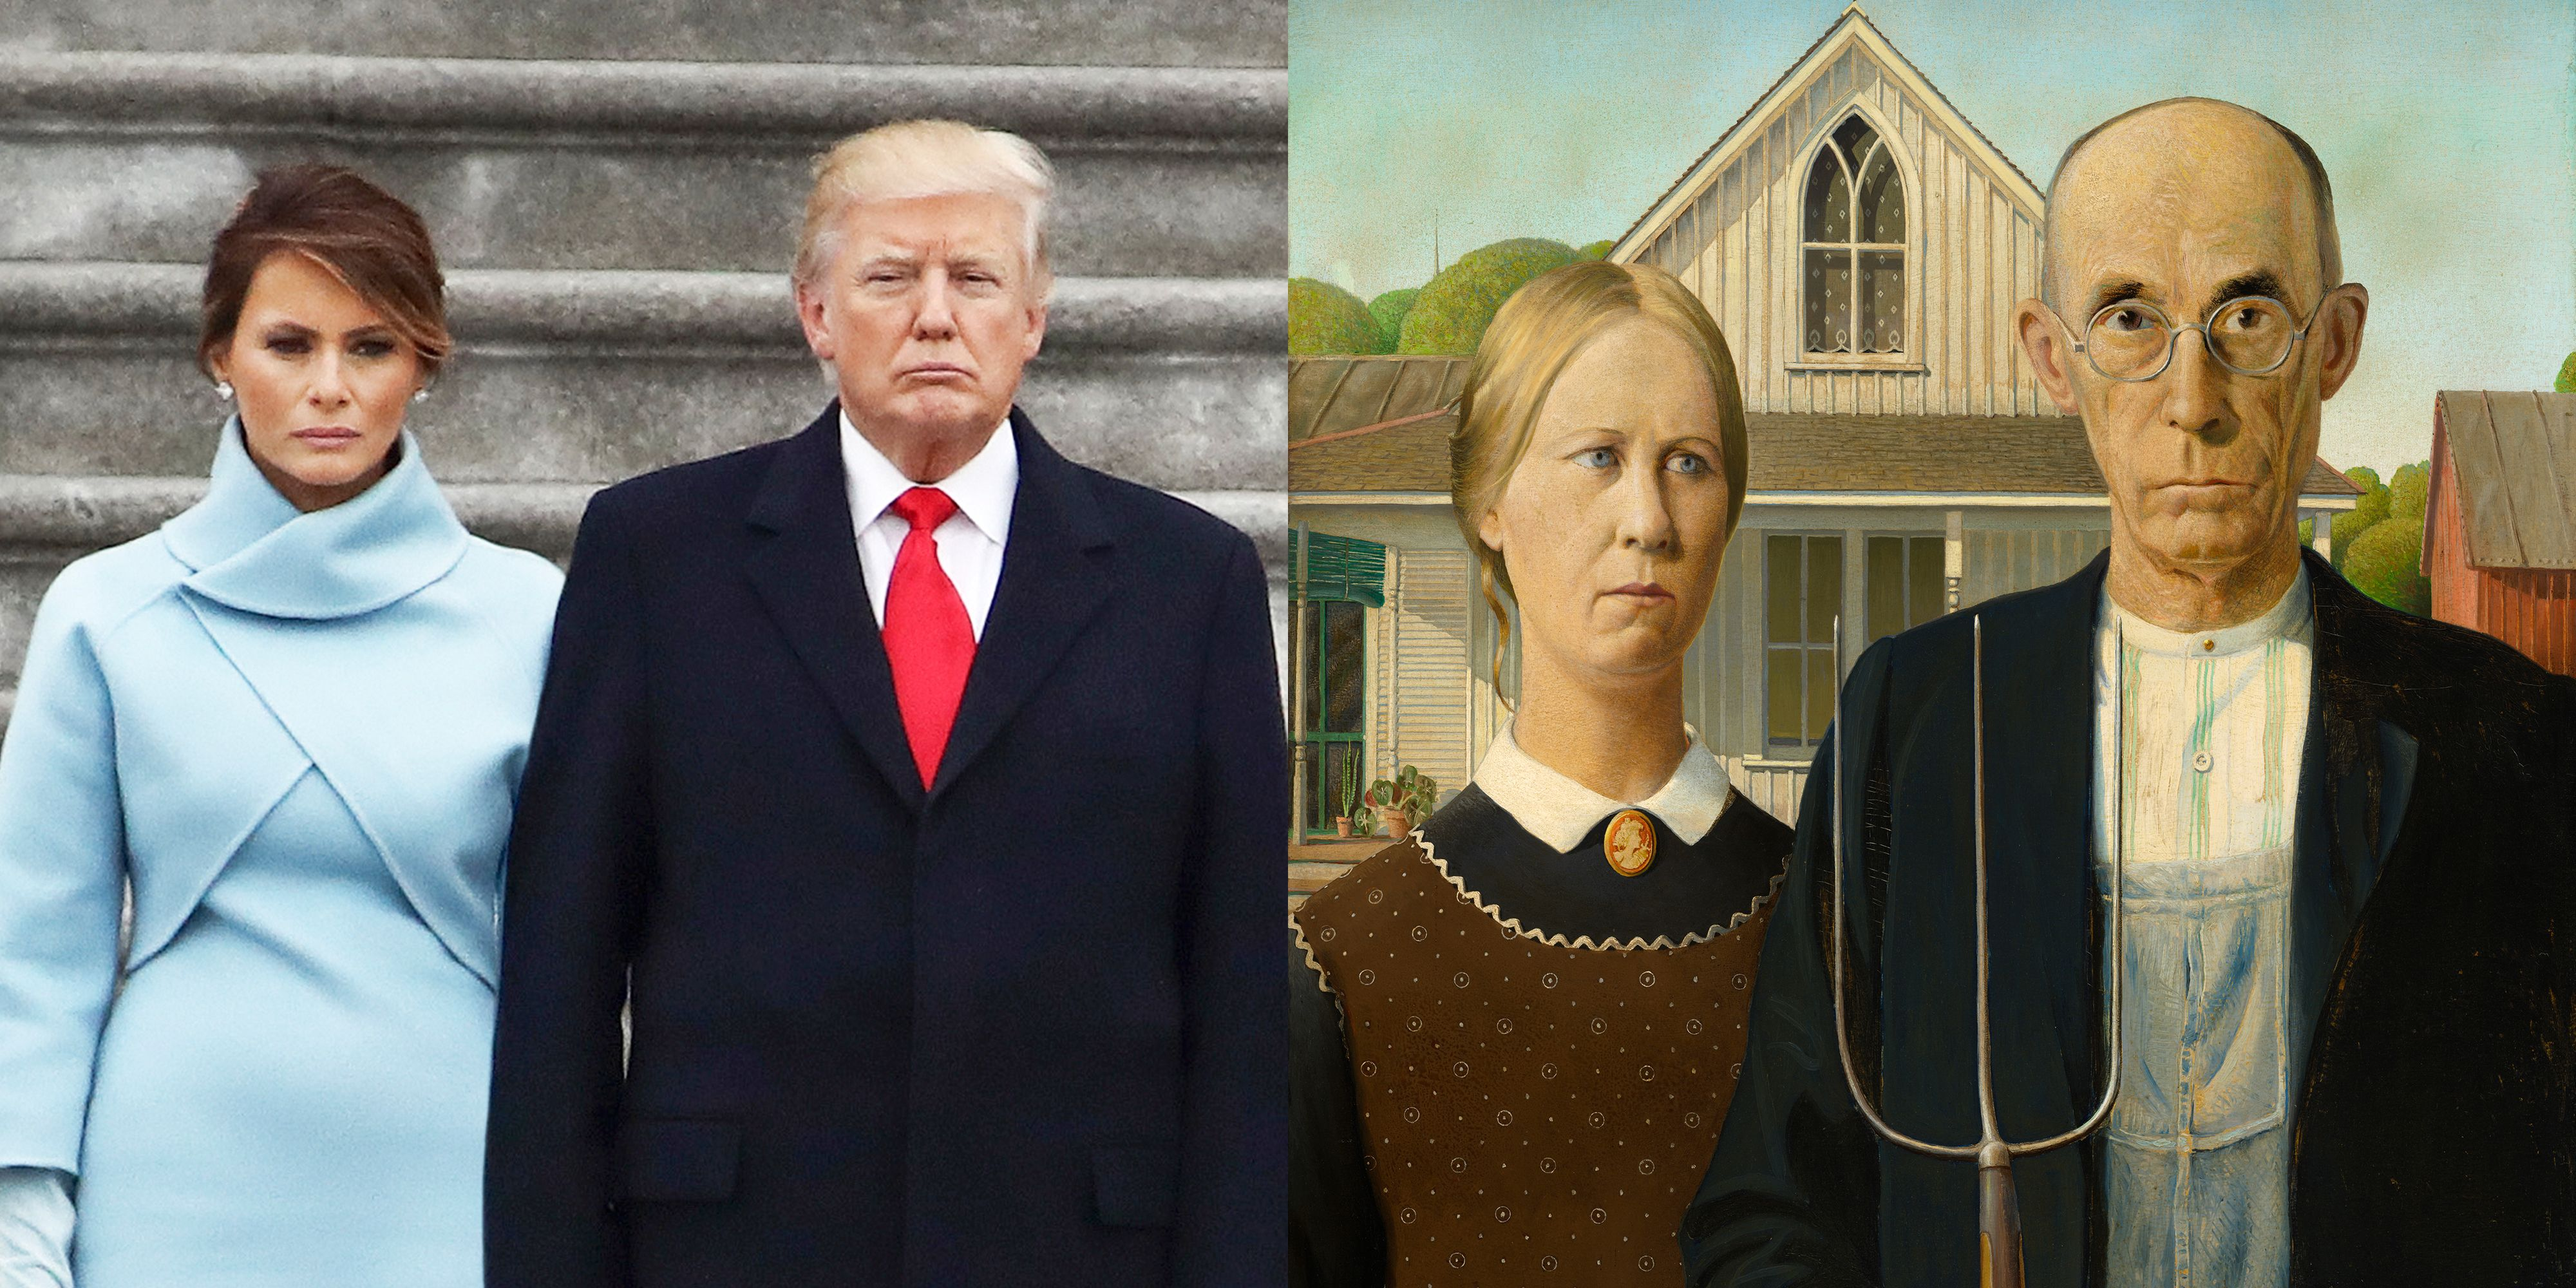 Art In The Age Of Trump